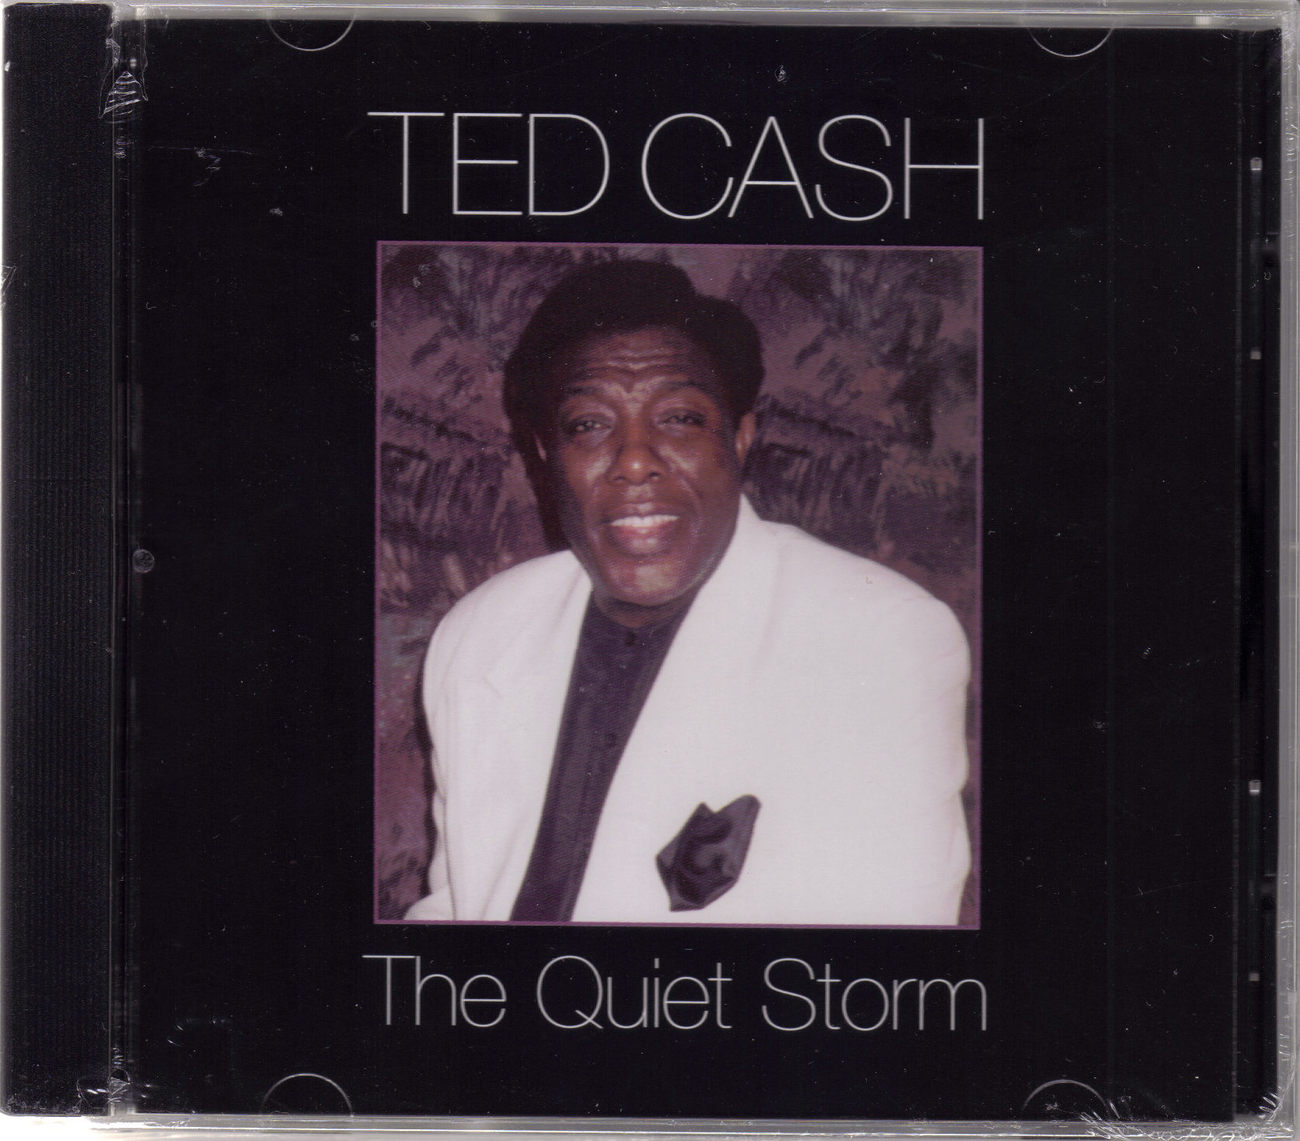 Music ted cash